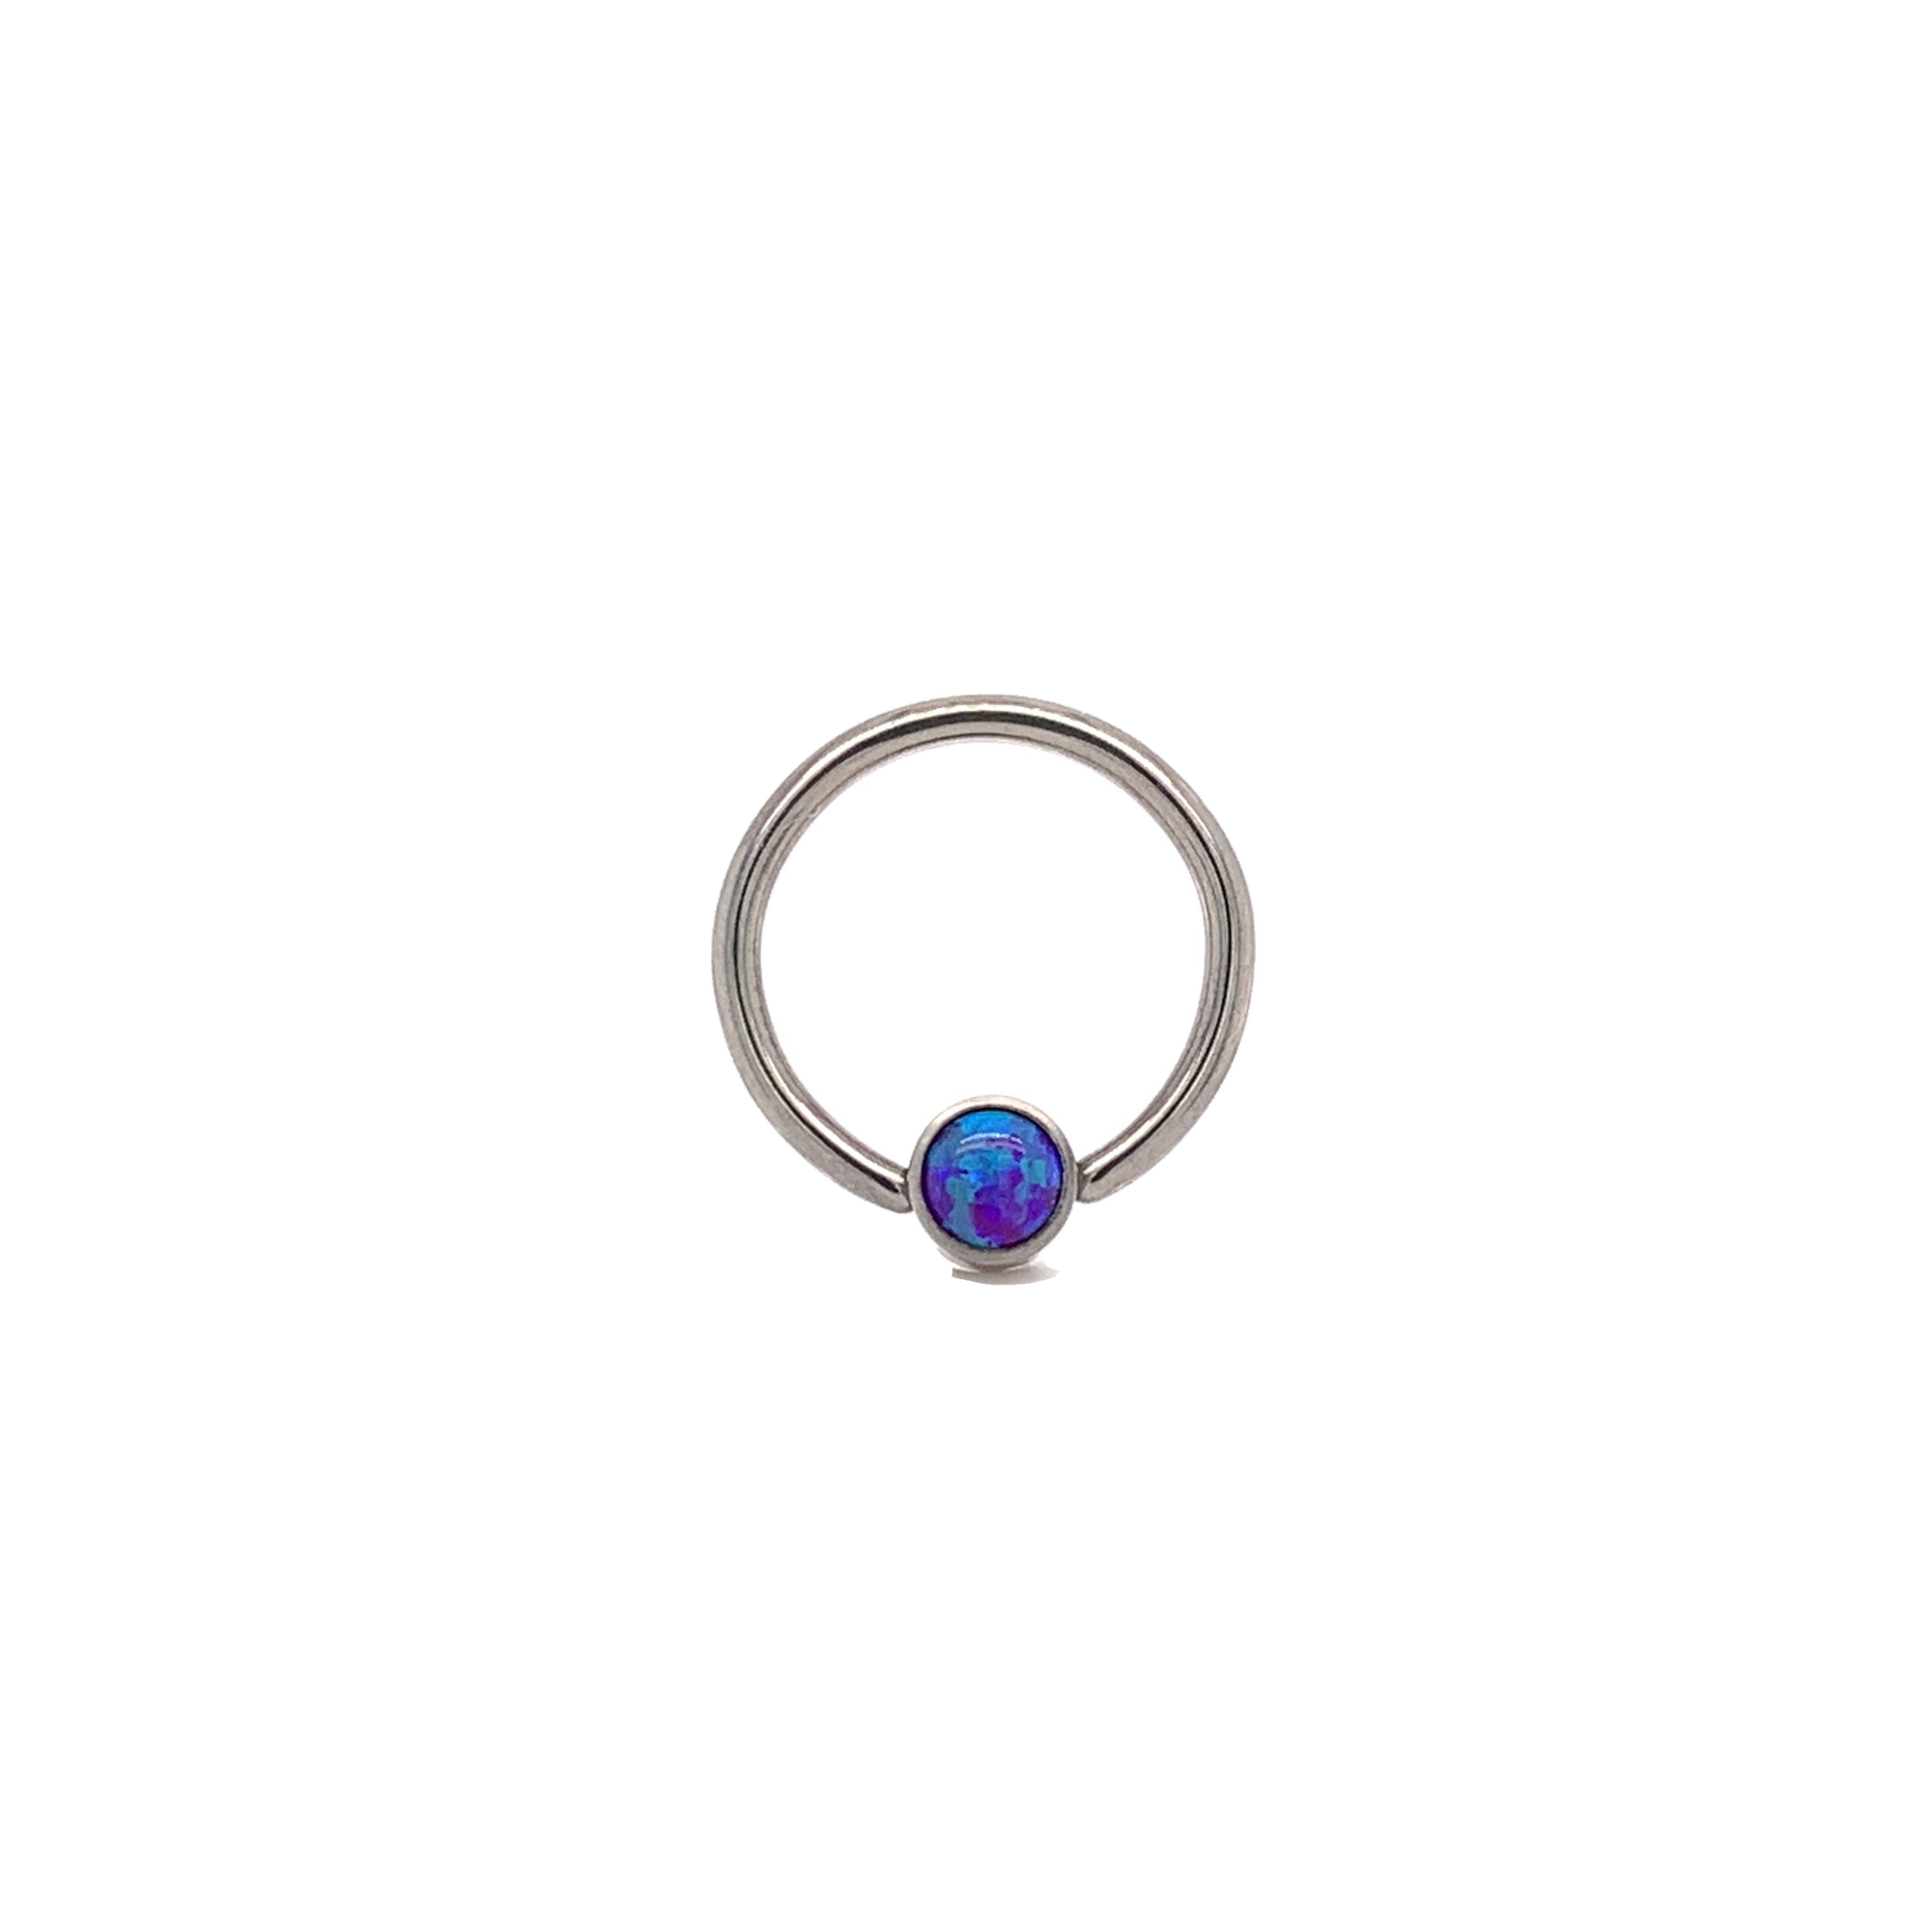 Halo Collection Sleepy Lavender Opal Captive Ring - Isha Body Jewellery